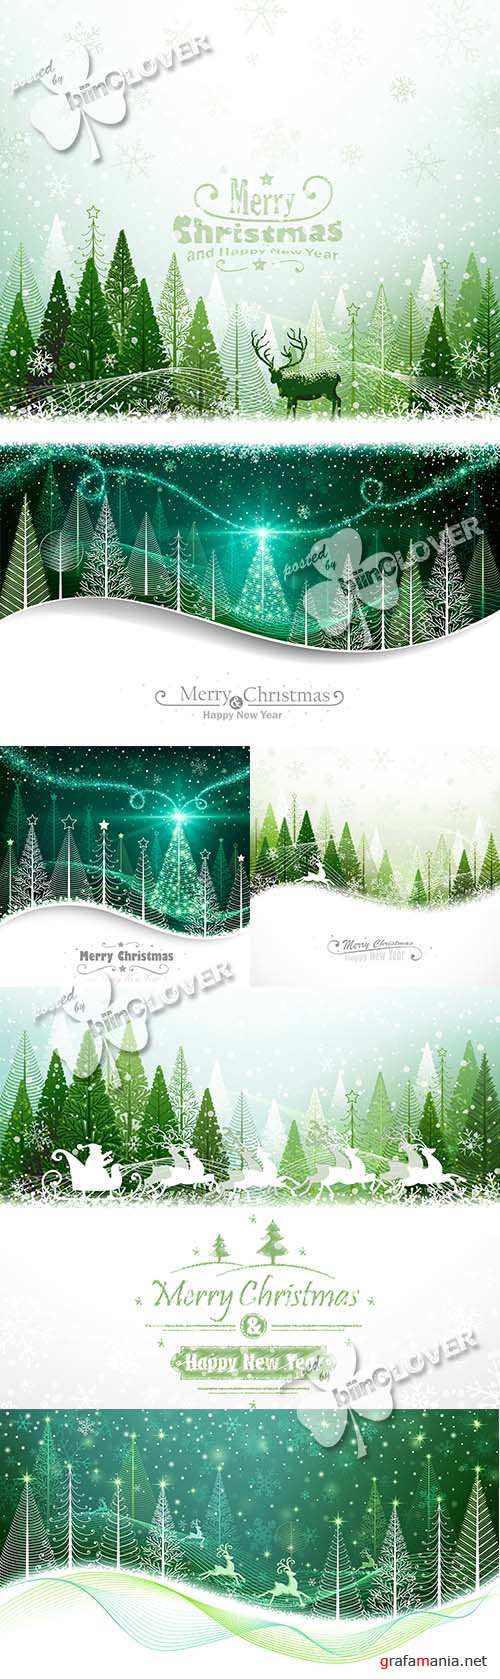 Merry Christmas cards 0544